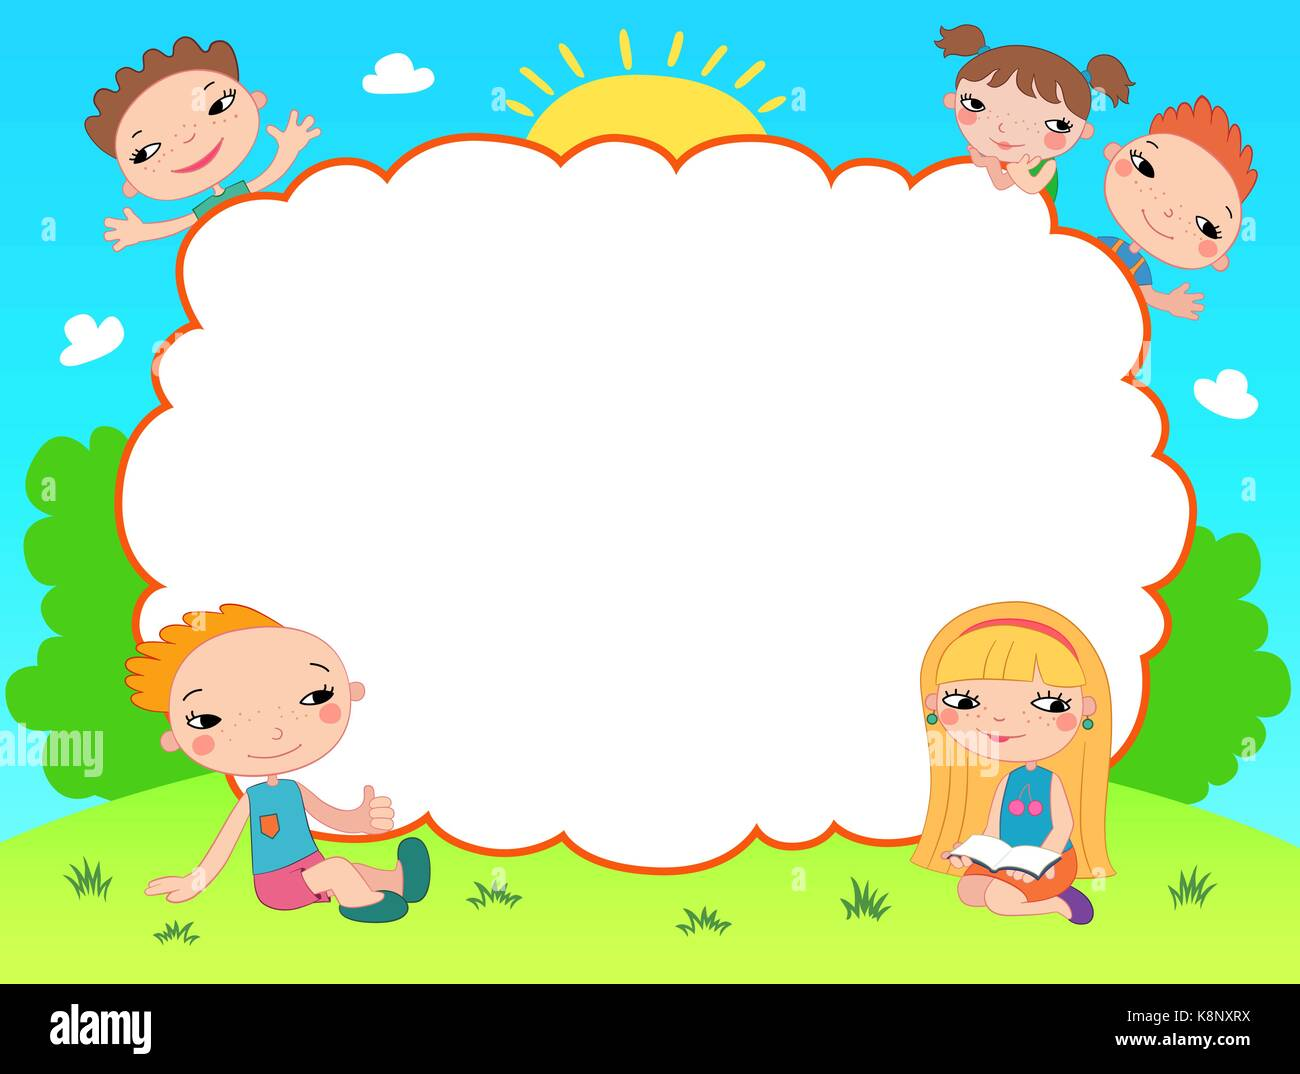 Stock Photo Kids Diploma Certificate Background Design Template 160292606 on Preschool Graduation Letter To Children